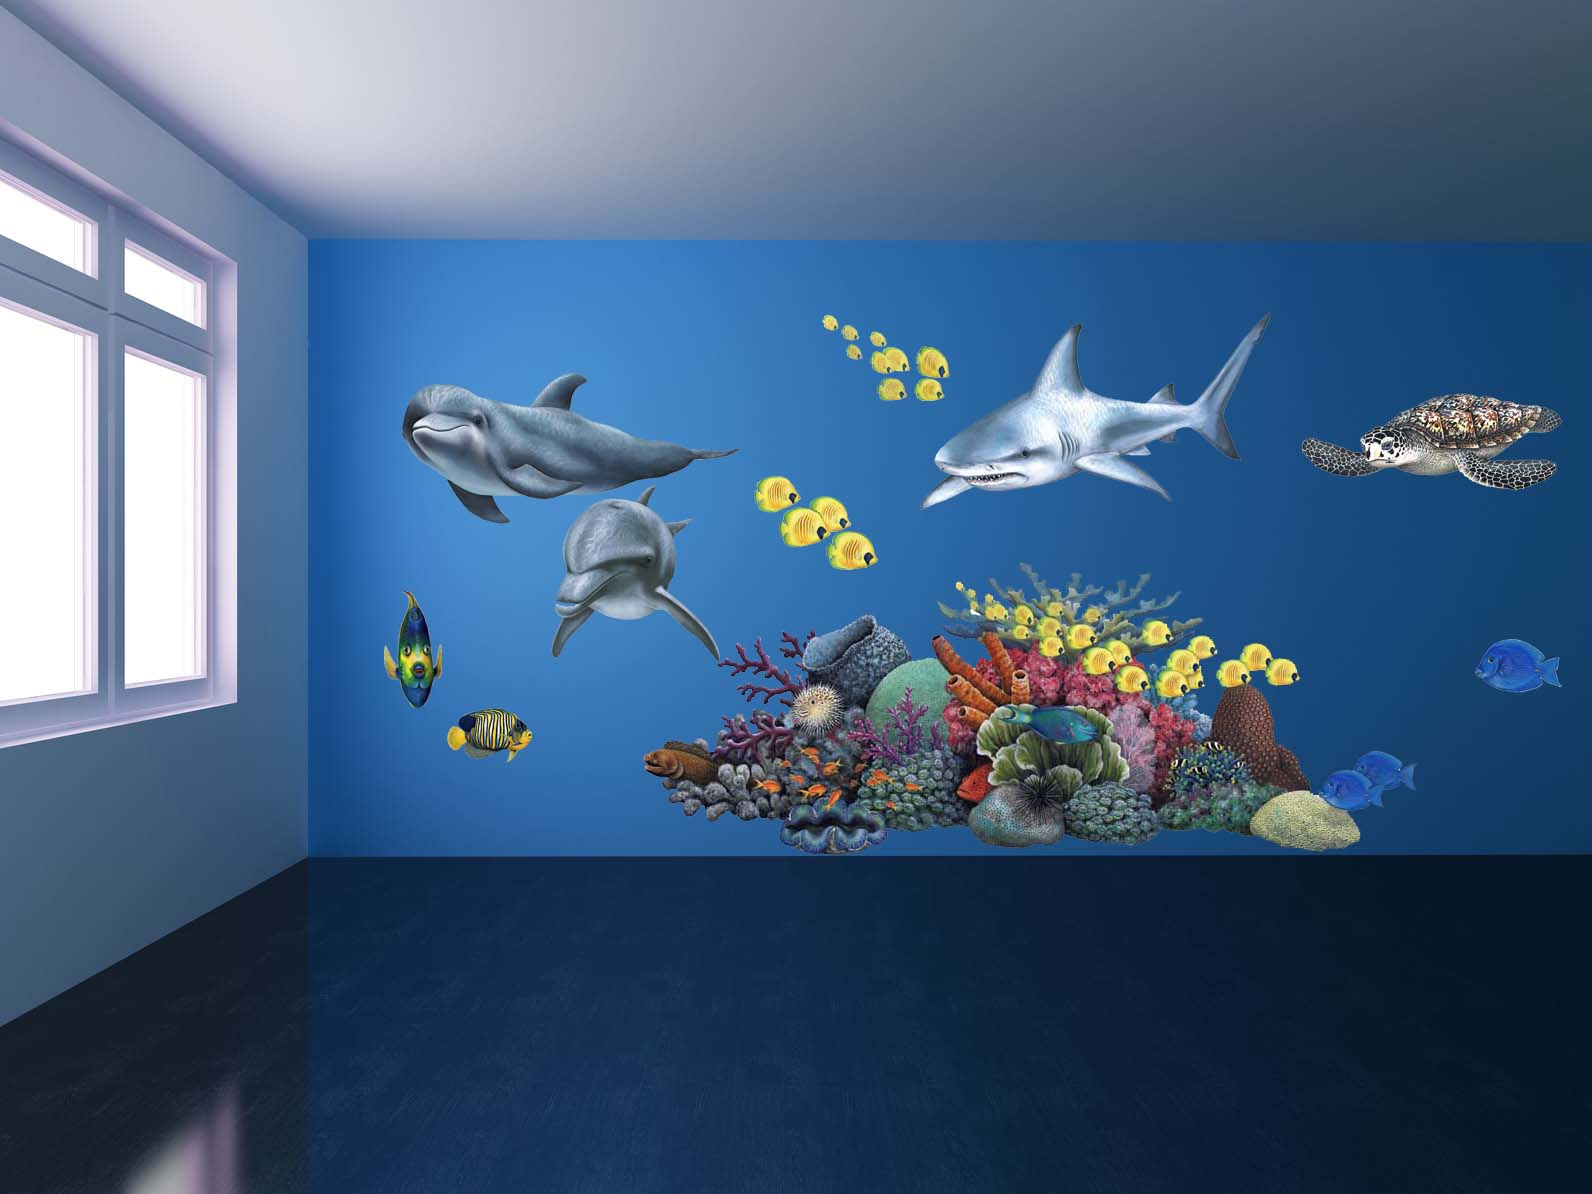 Coral Wall Sticker Giant Animal Decals Fun Decor